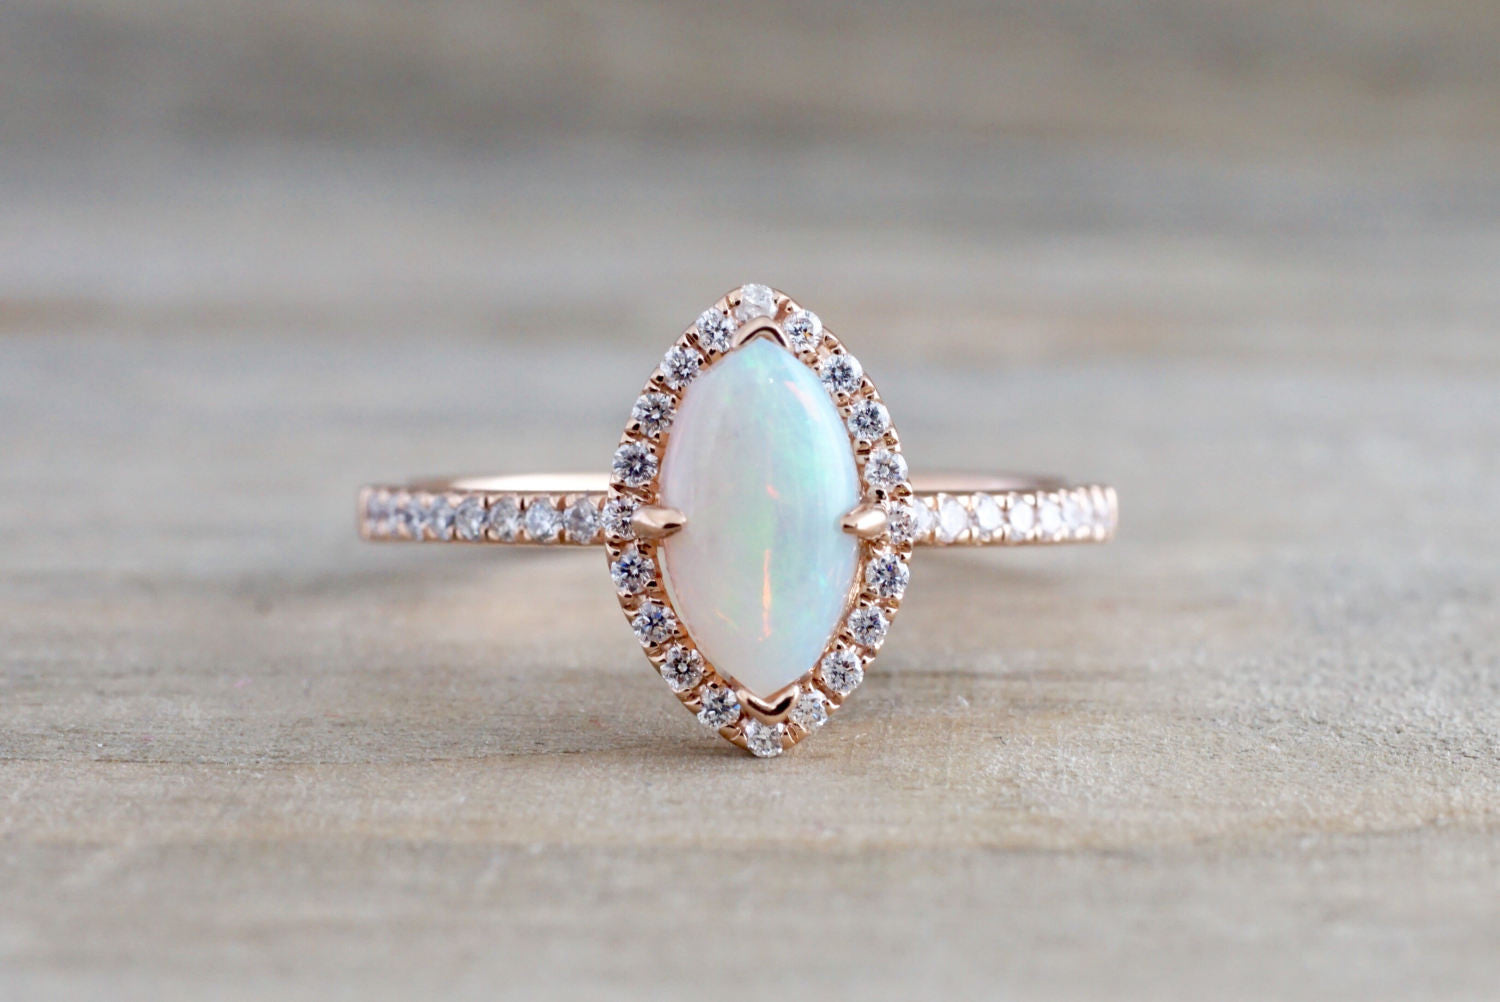 media ring deco engagement sterling opal rings gemstone art natural bihls promise alternative